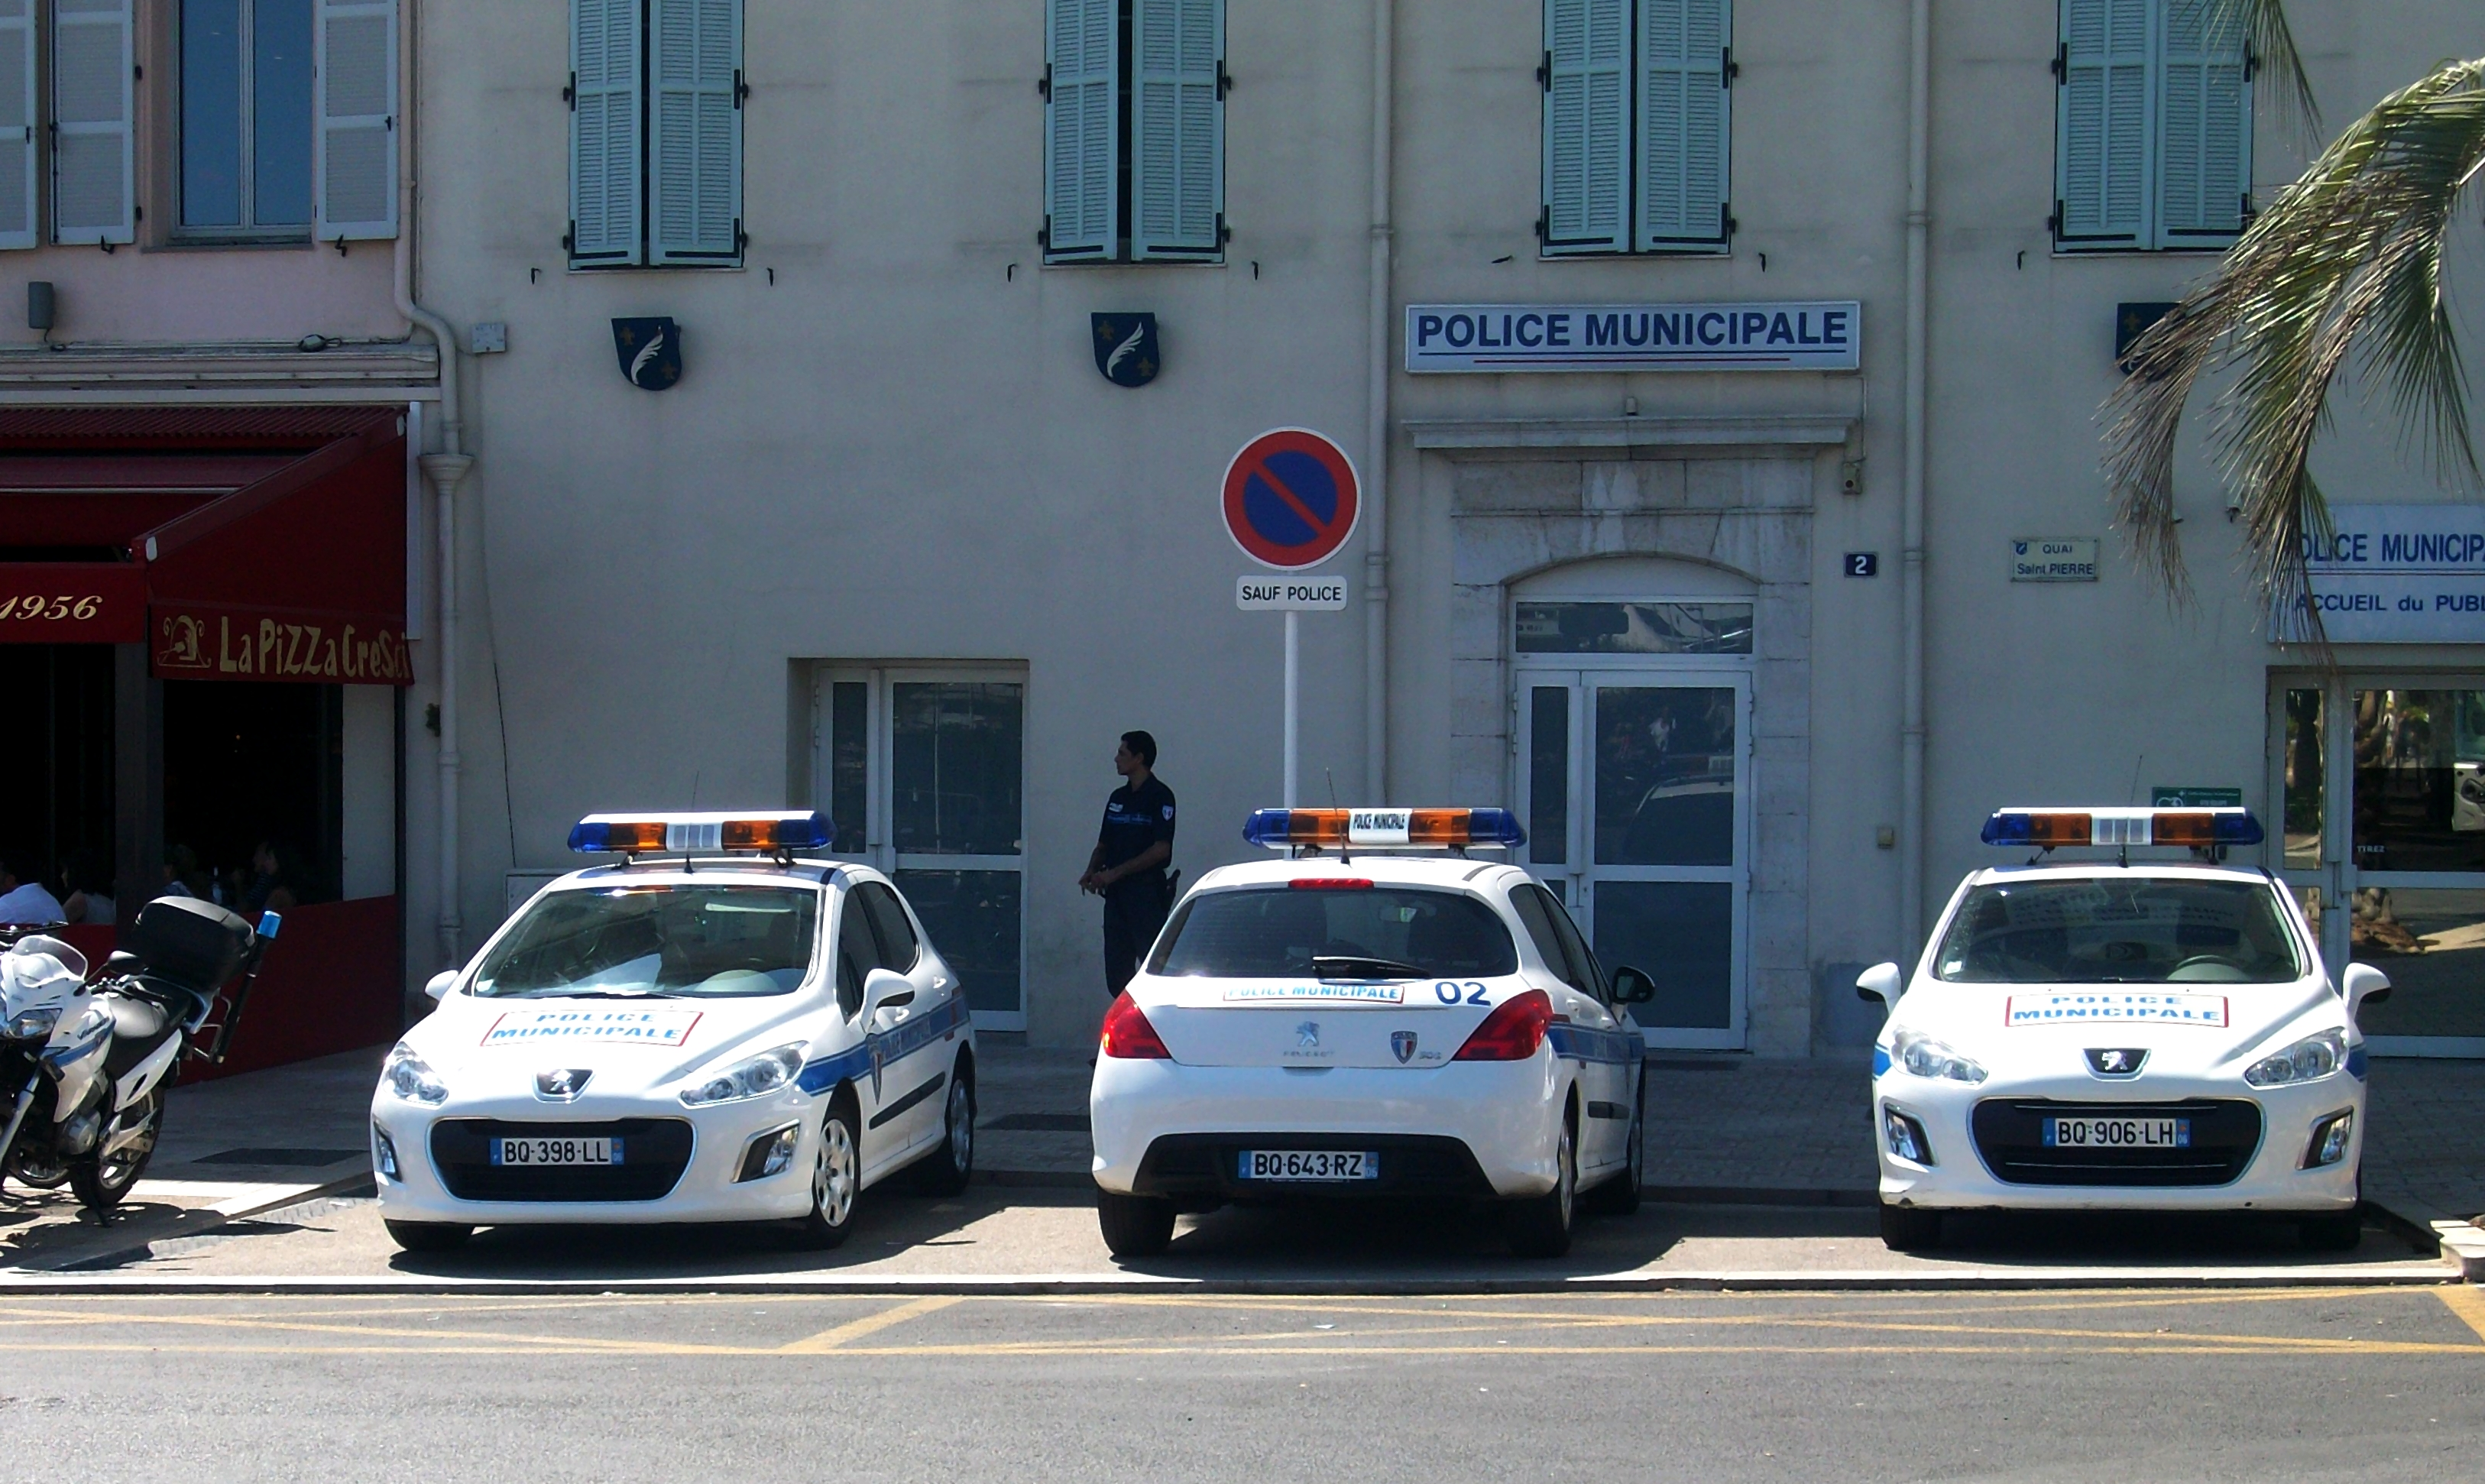 File police municipale cannes peugeot 308 jpg for Police cannes